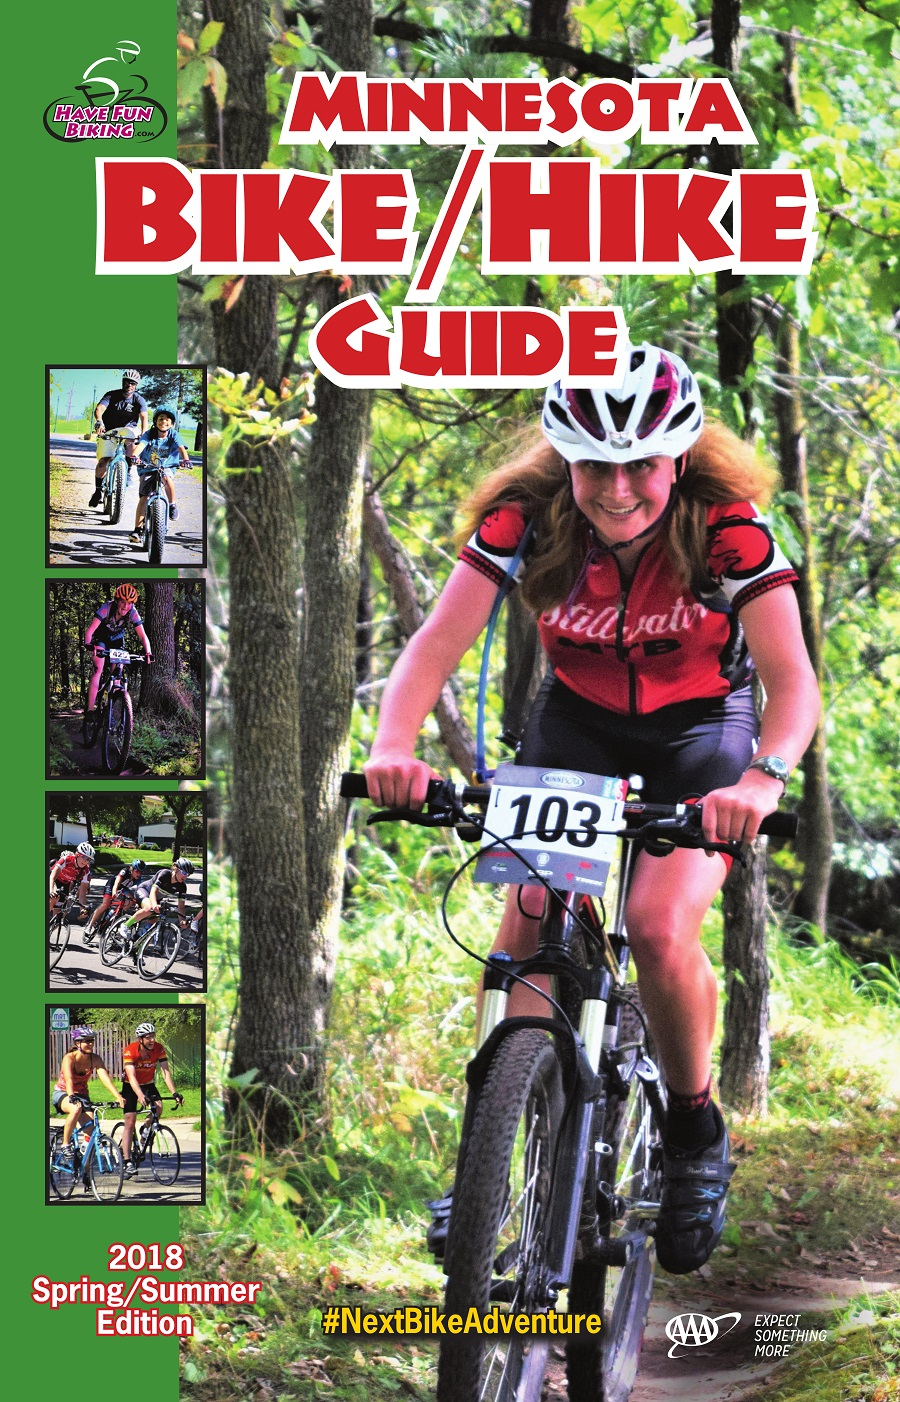 The 2018 Minnesota Bike/Hike Guide is here to help you plan your next bike adventure.